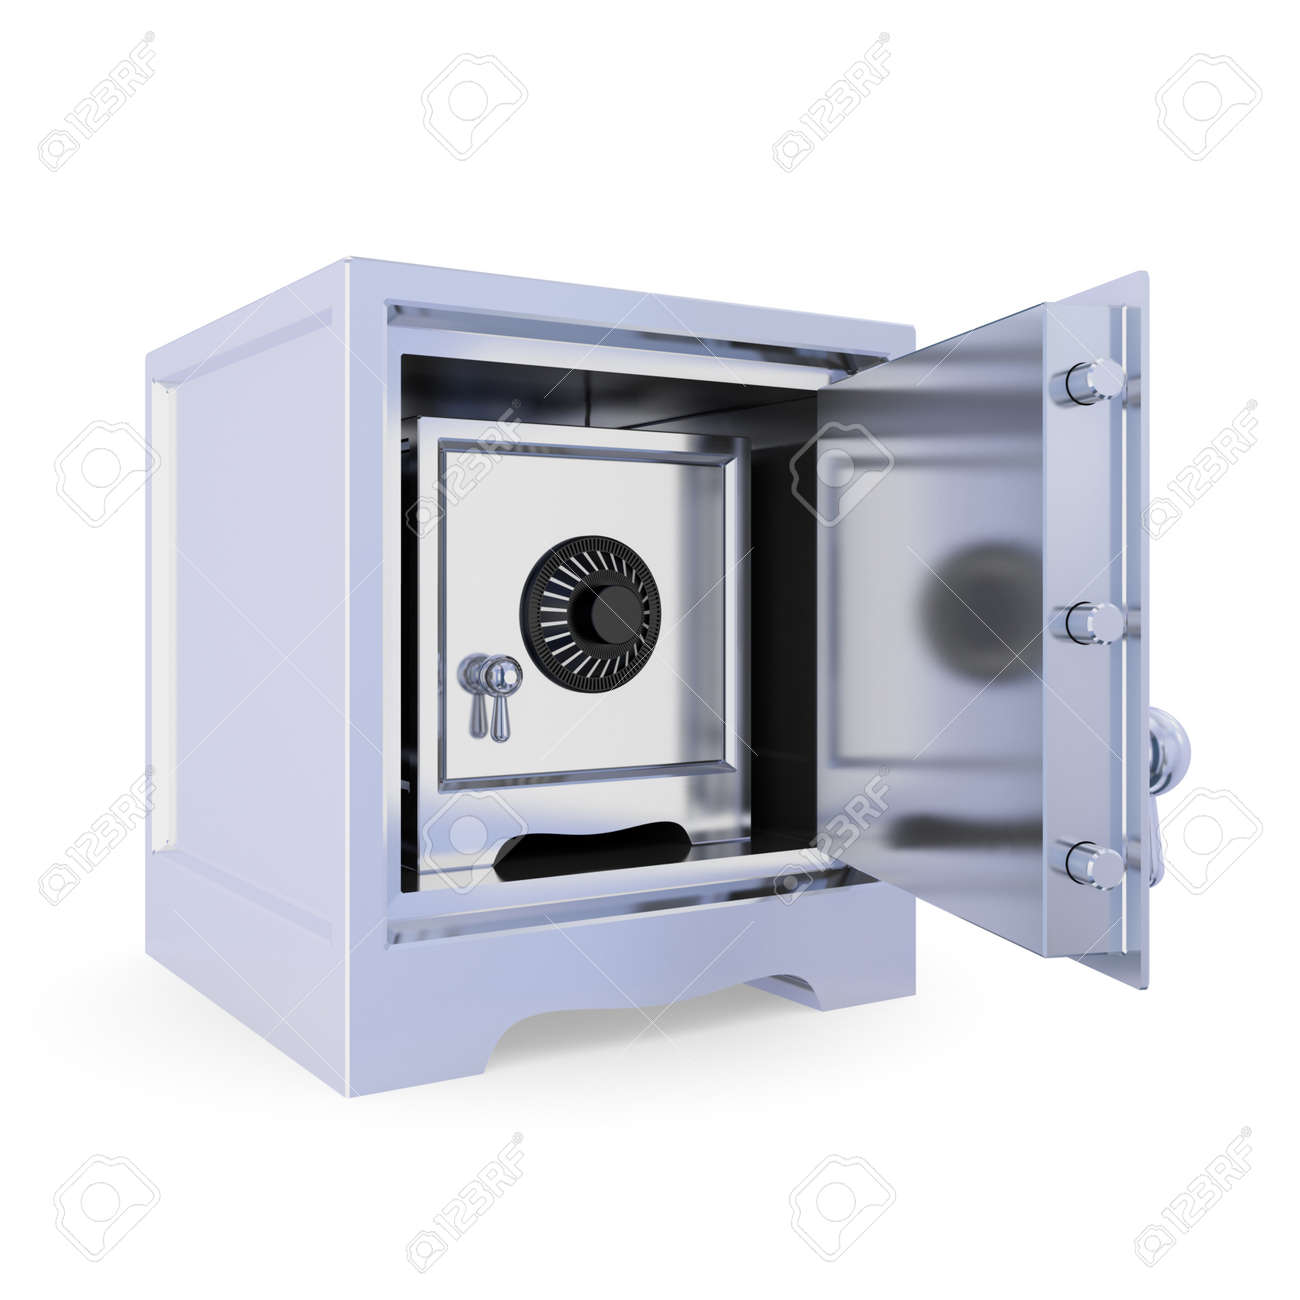 Opened iron safe and another safe inside. Double protection concept. Isolated on white background. 3d rendered. Stock Photo - 12223822